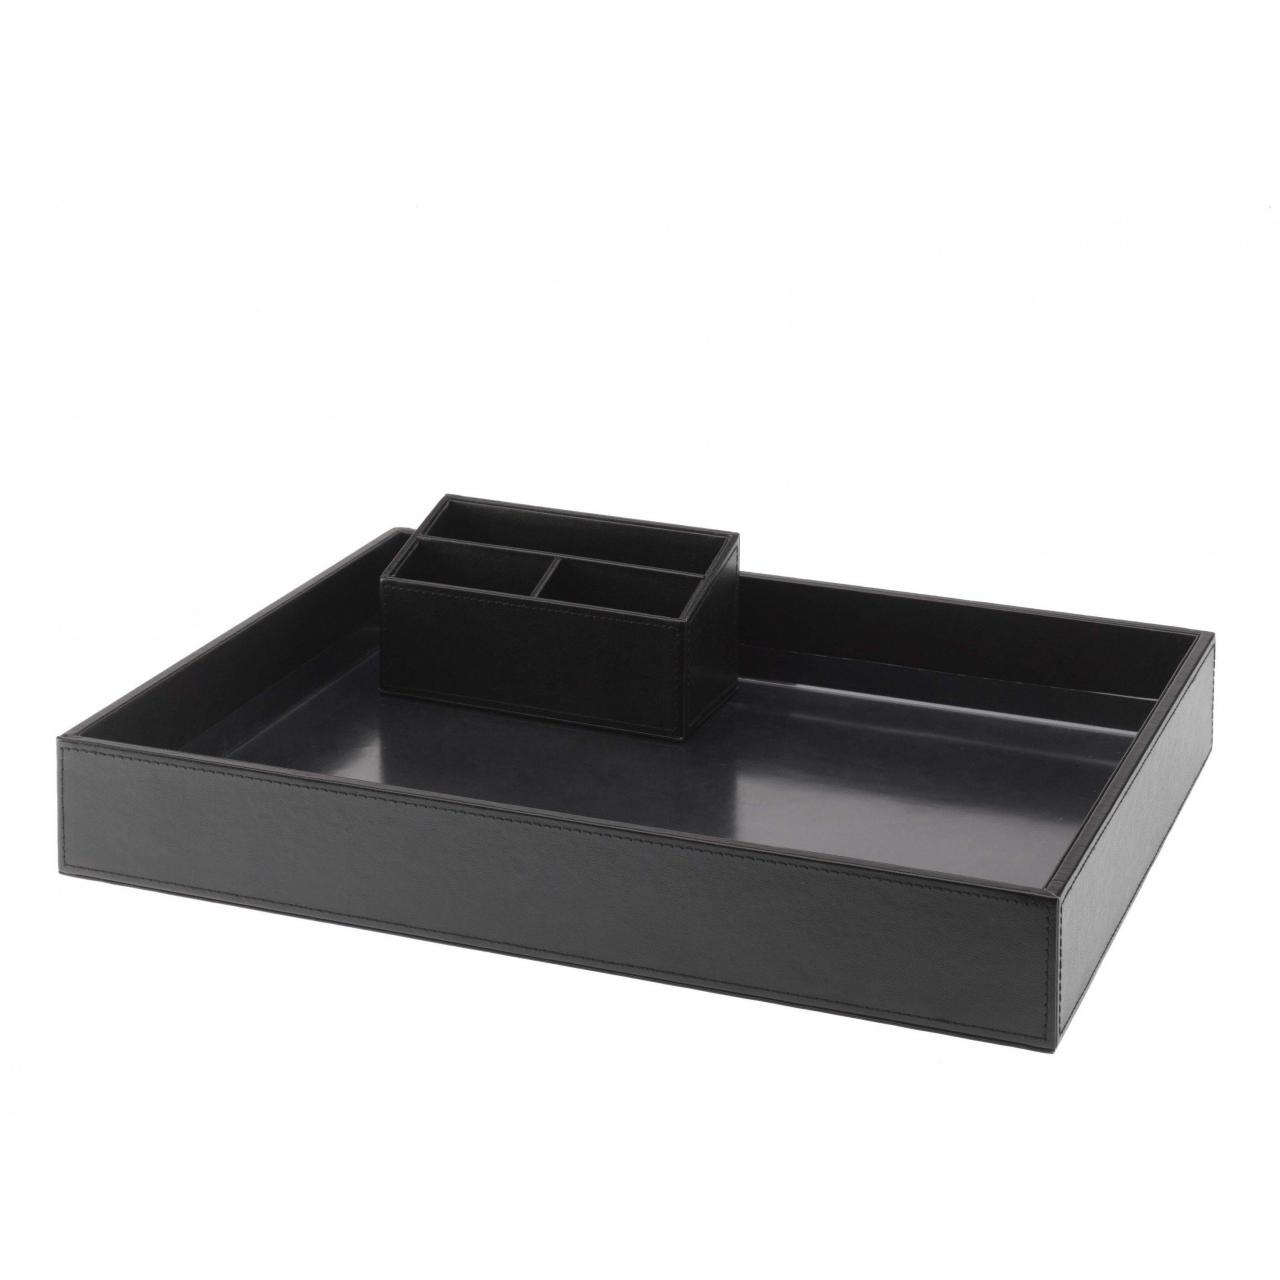 Quality HENDON LEATHERETTE TRAY SET for sale